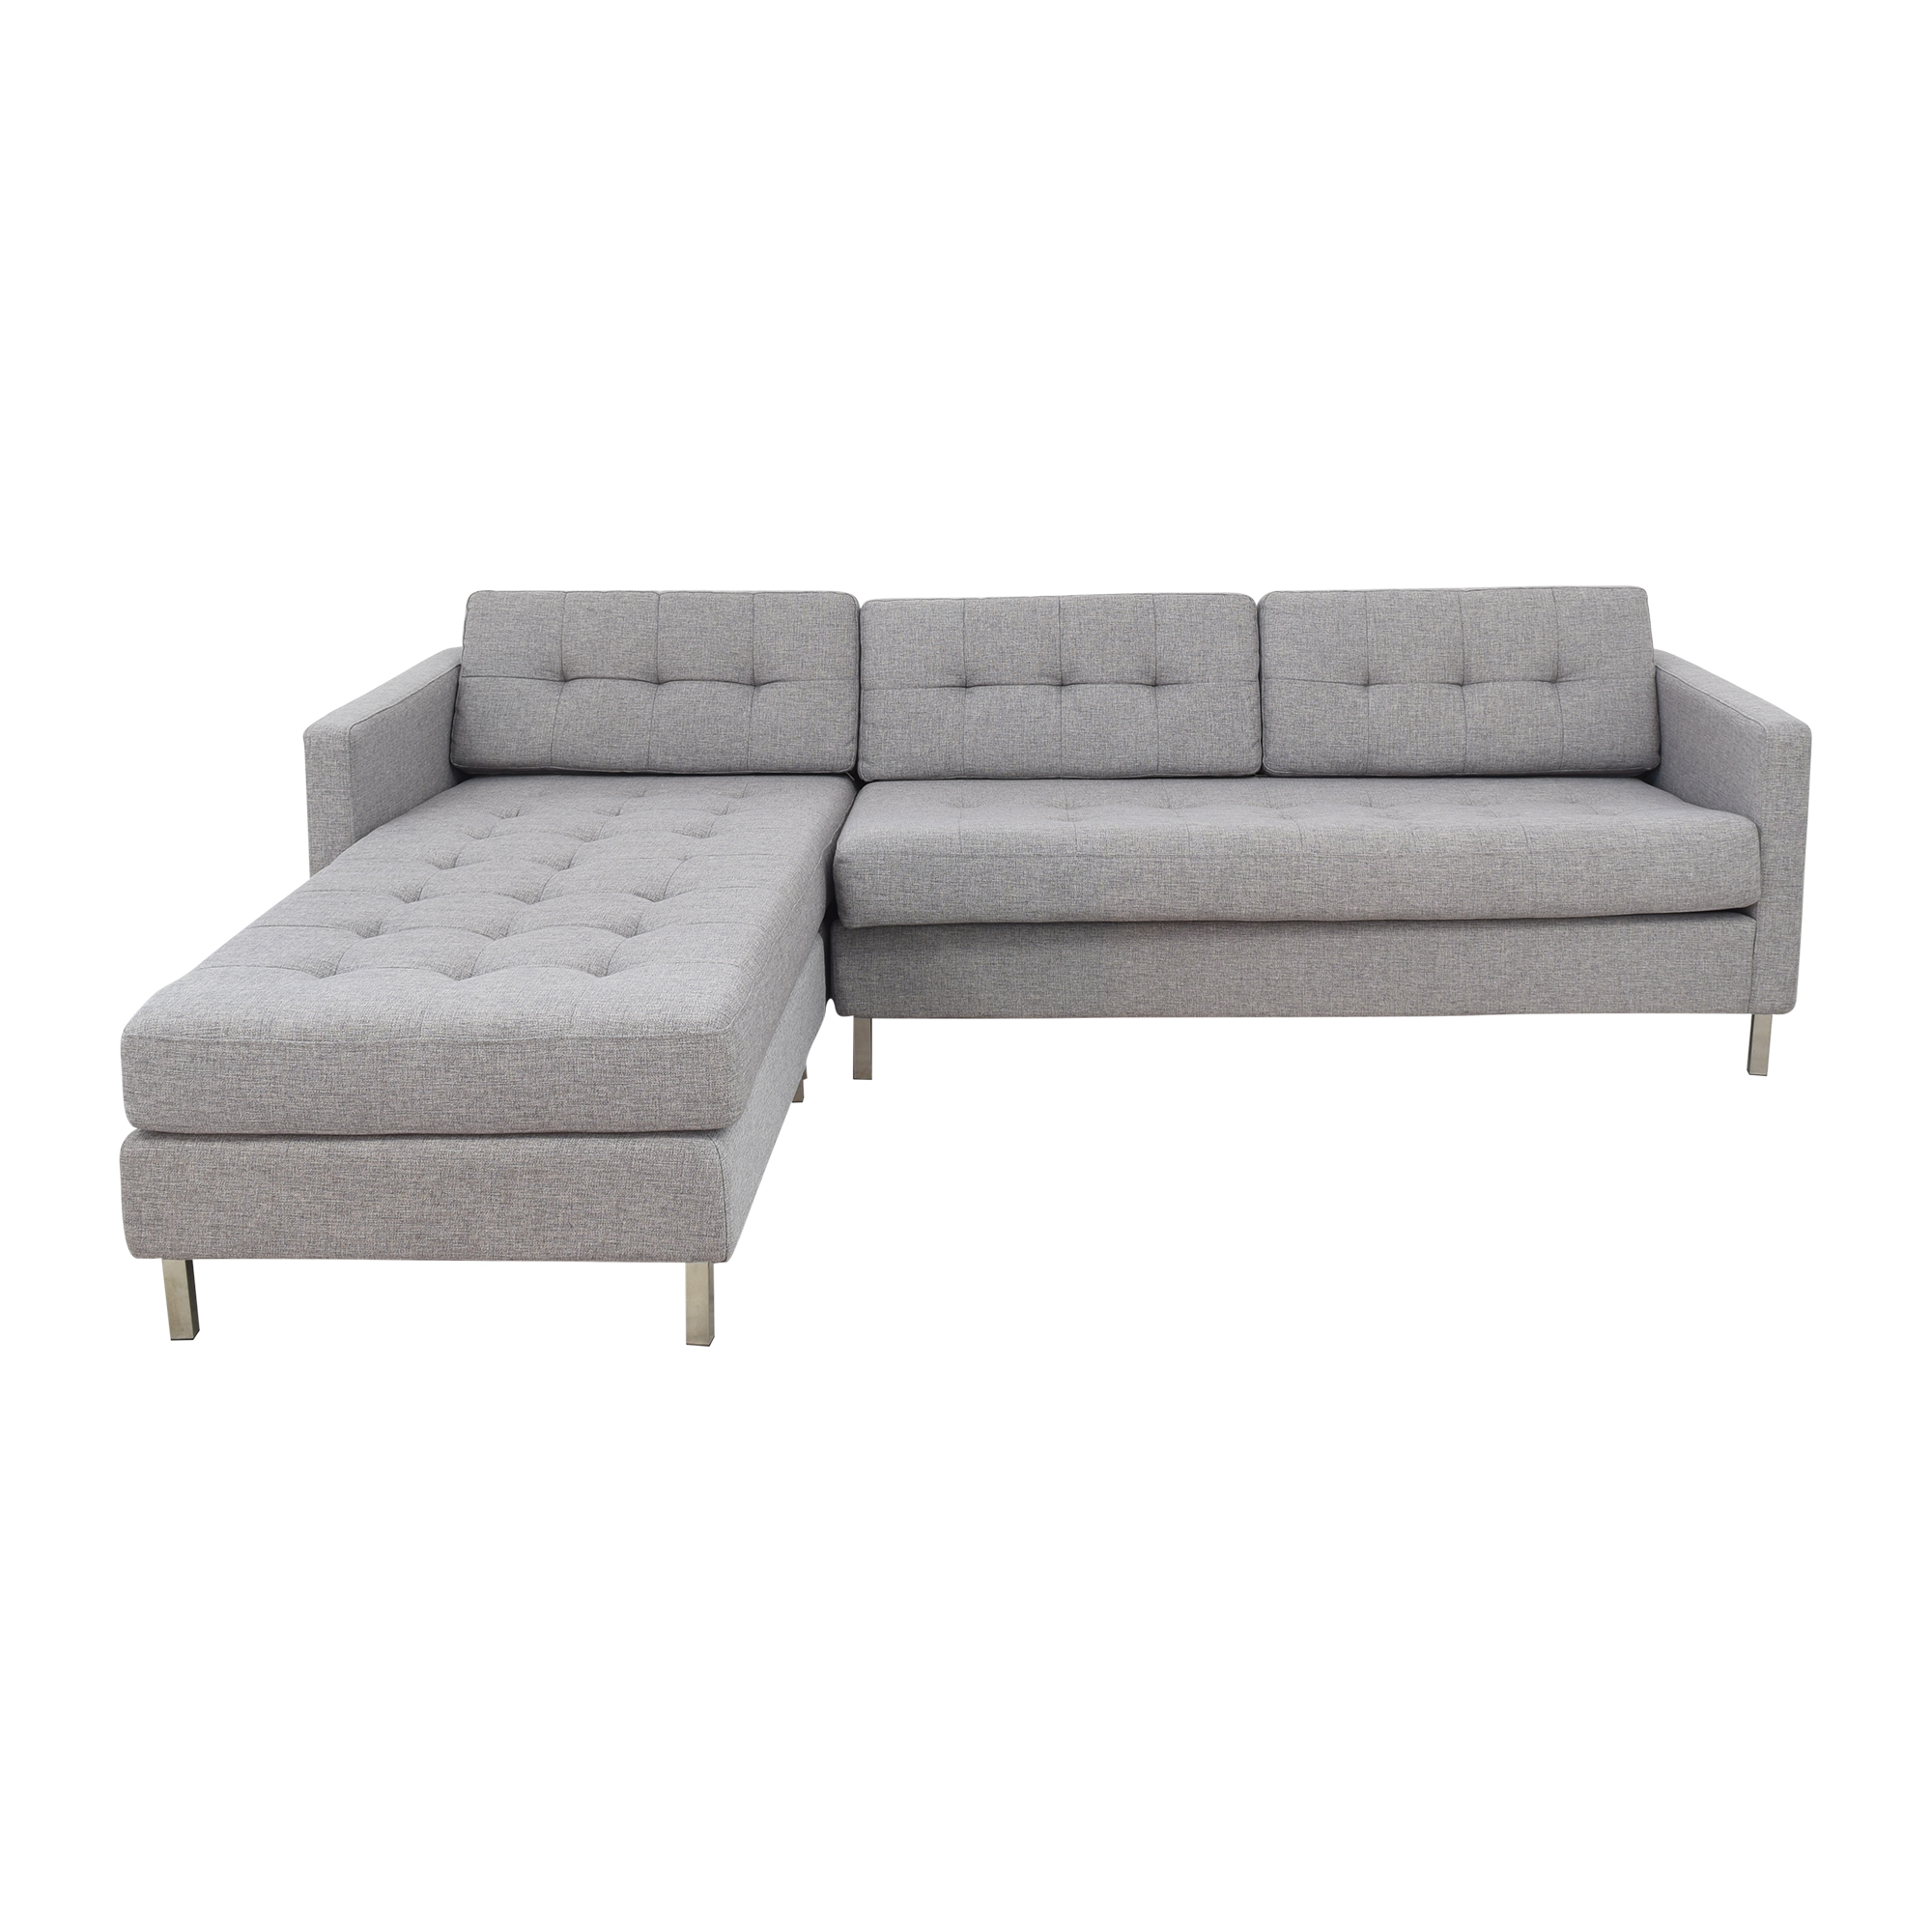 CB2 CB2 Ditto II Chaise Sectional and Ottoman light grey